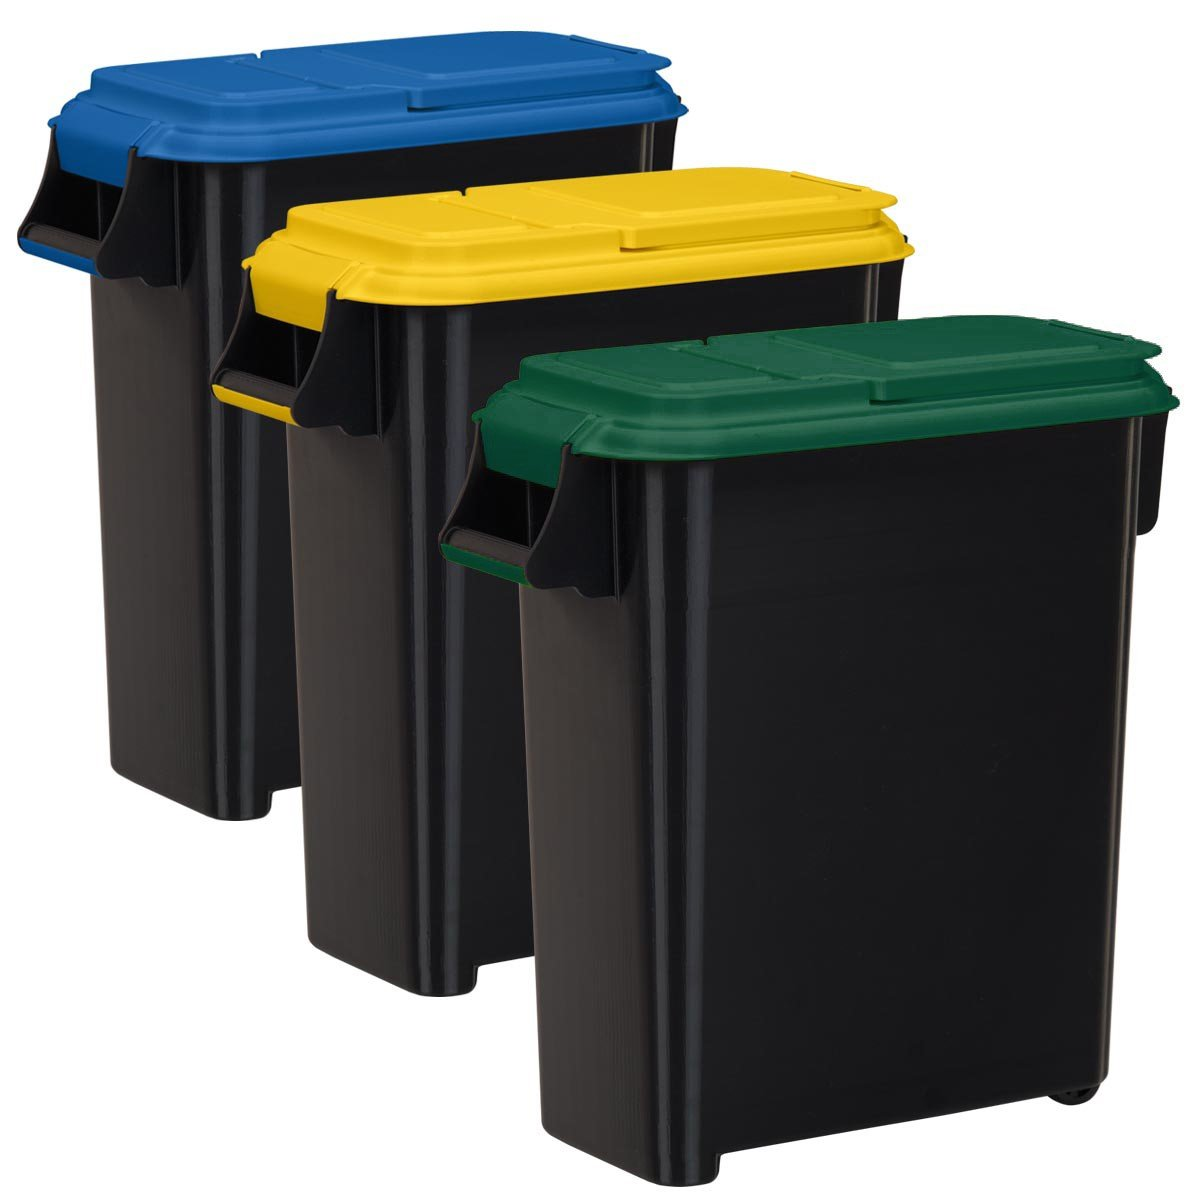 Buddeez Recycling Containers with Color Coded Lids, 20-Gallon/80-Quart, 3-Pack